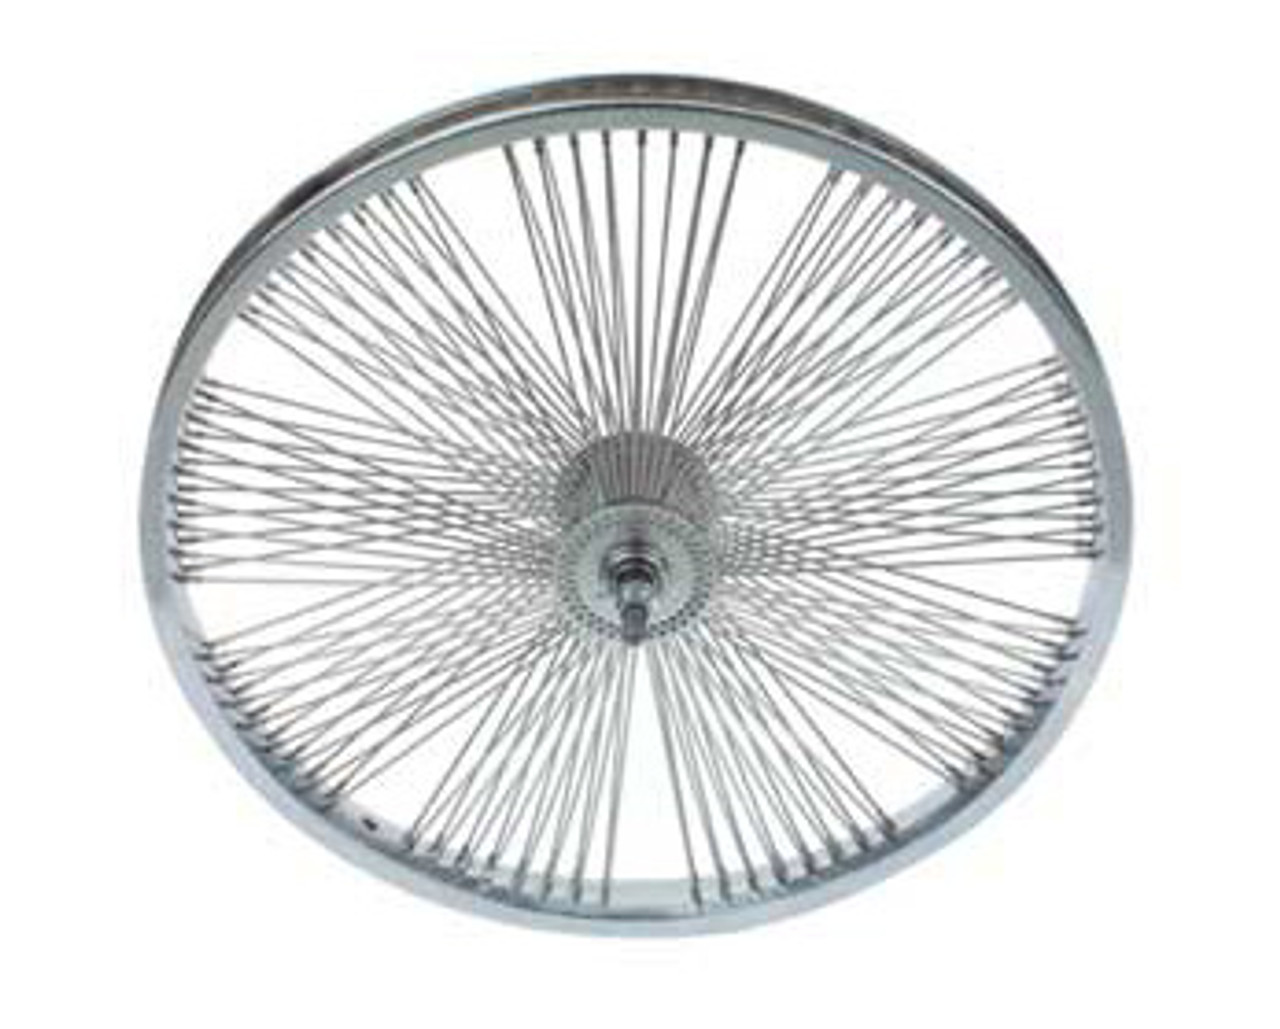 Lowrider Chrome Chain Bicycle Steering Wheel  Lowrider Bike Cruiser Accessory